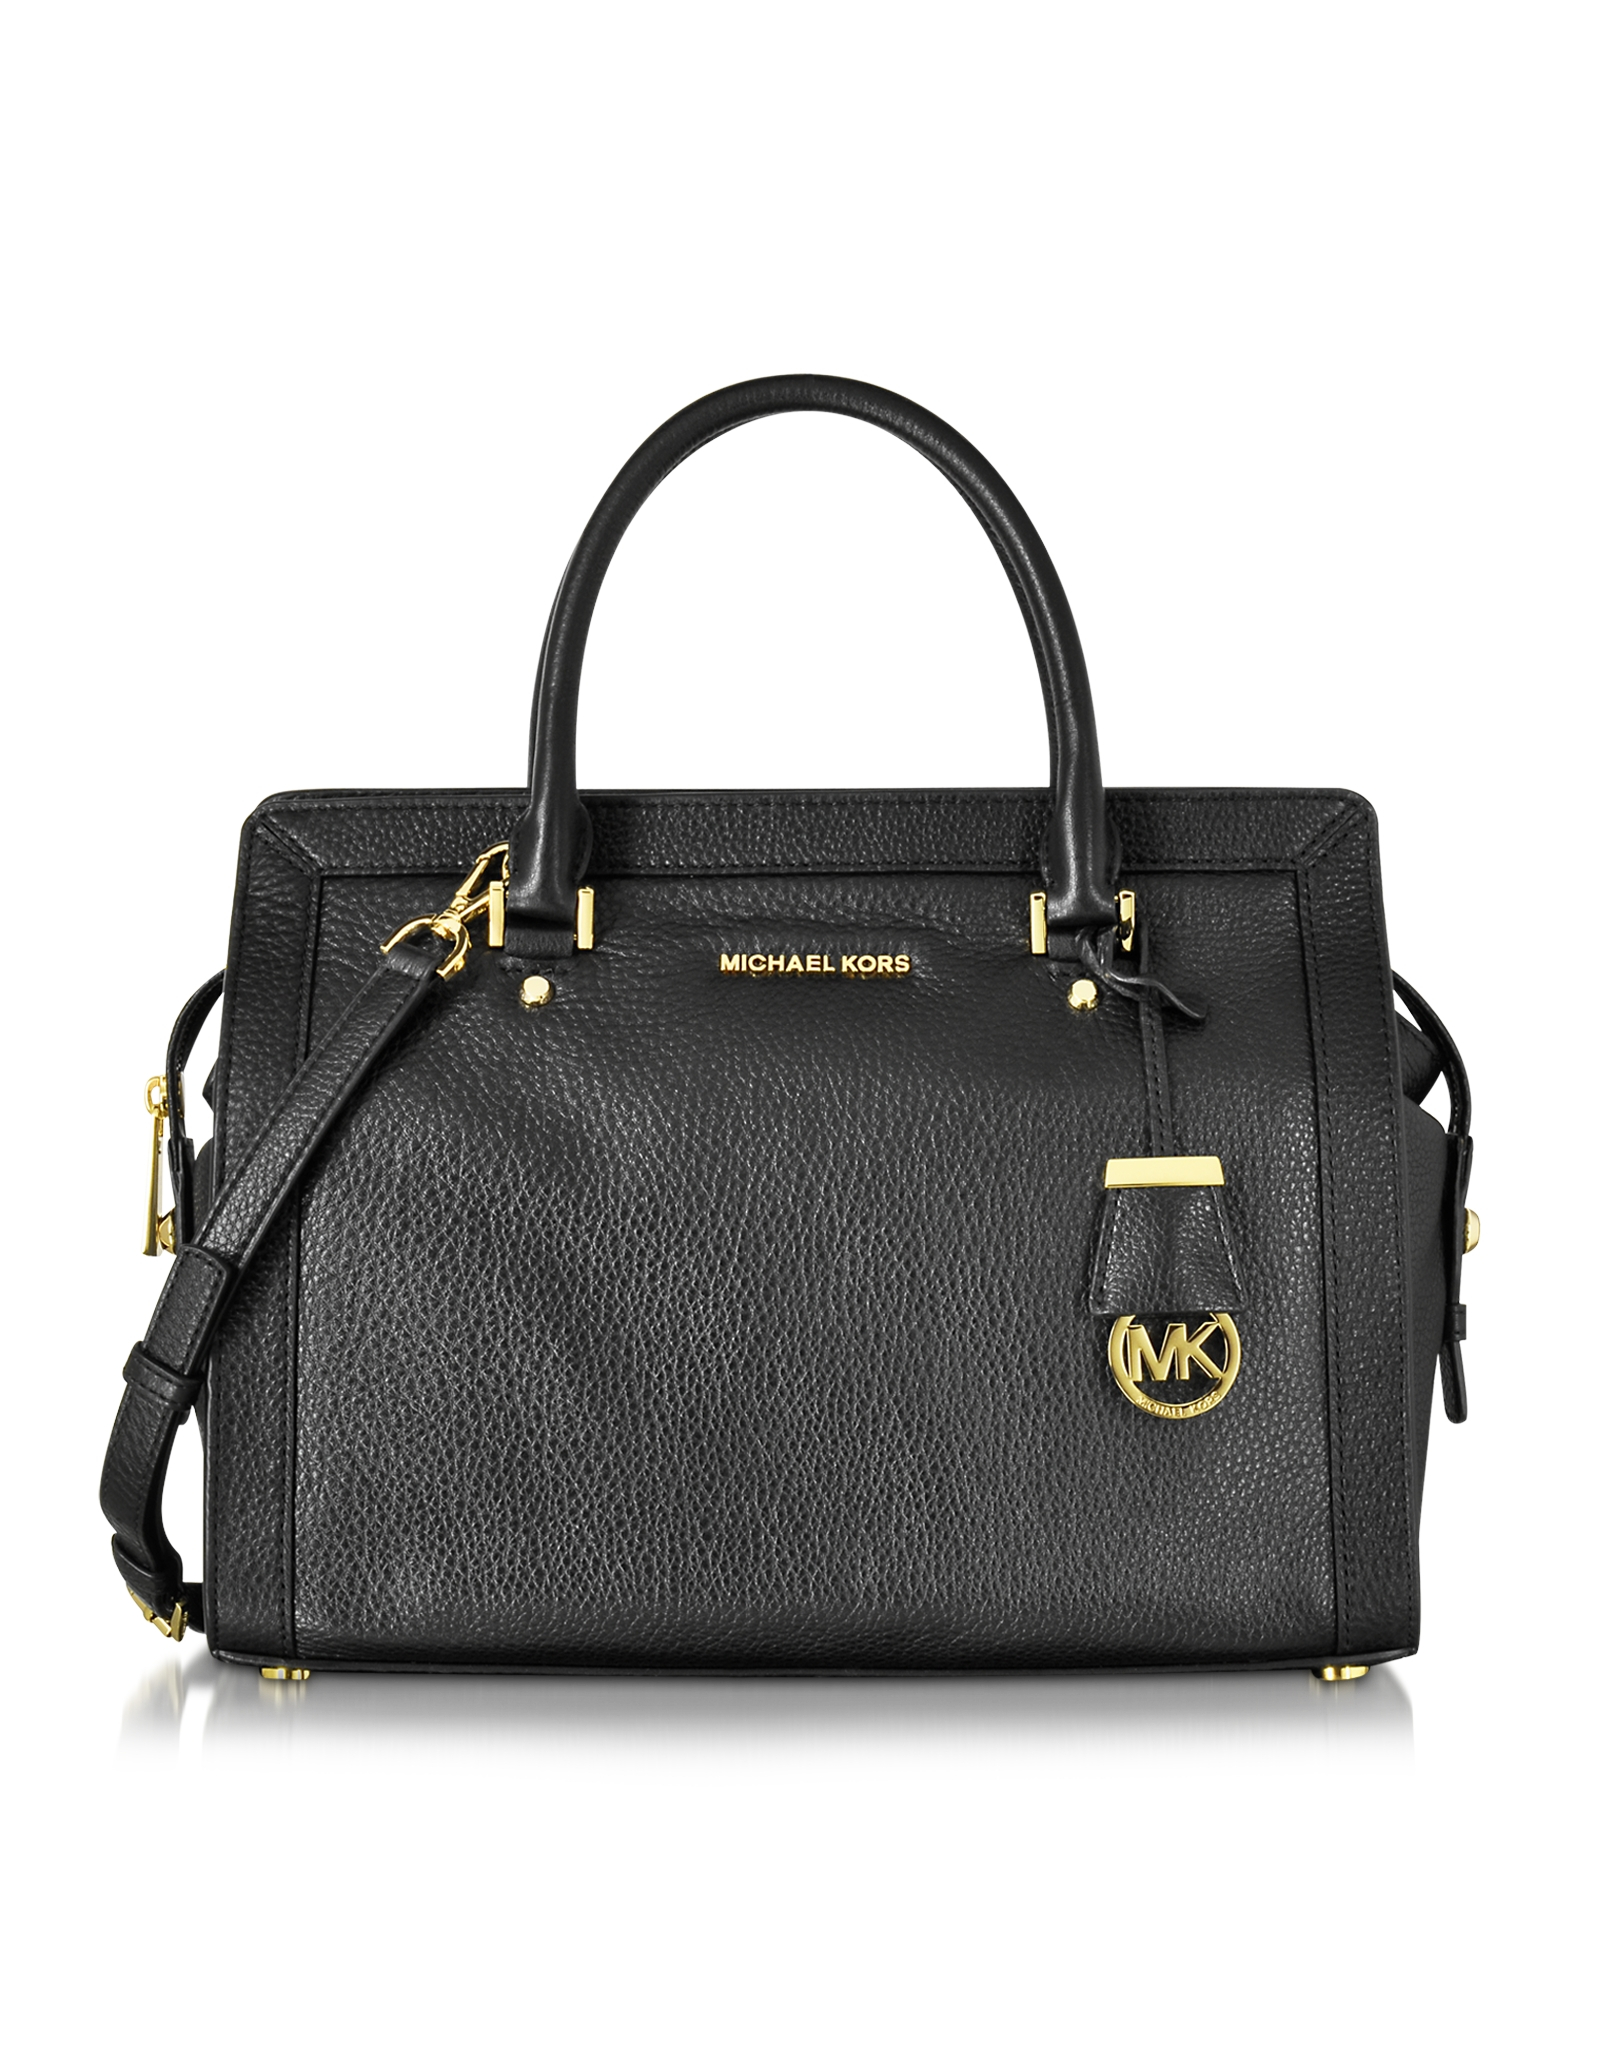 Michael kors Collins Large Leather Satchel Bag in Black | Lyst